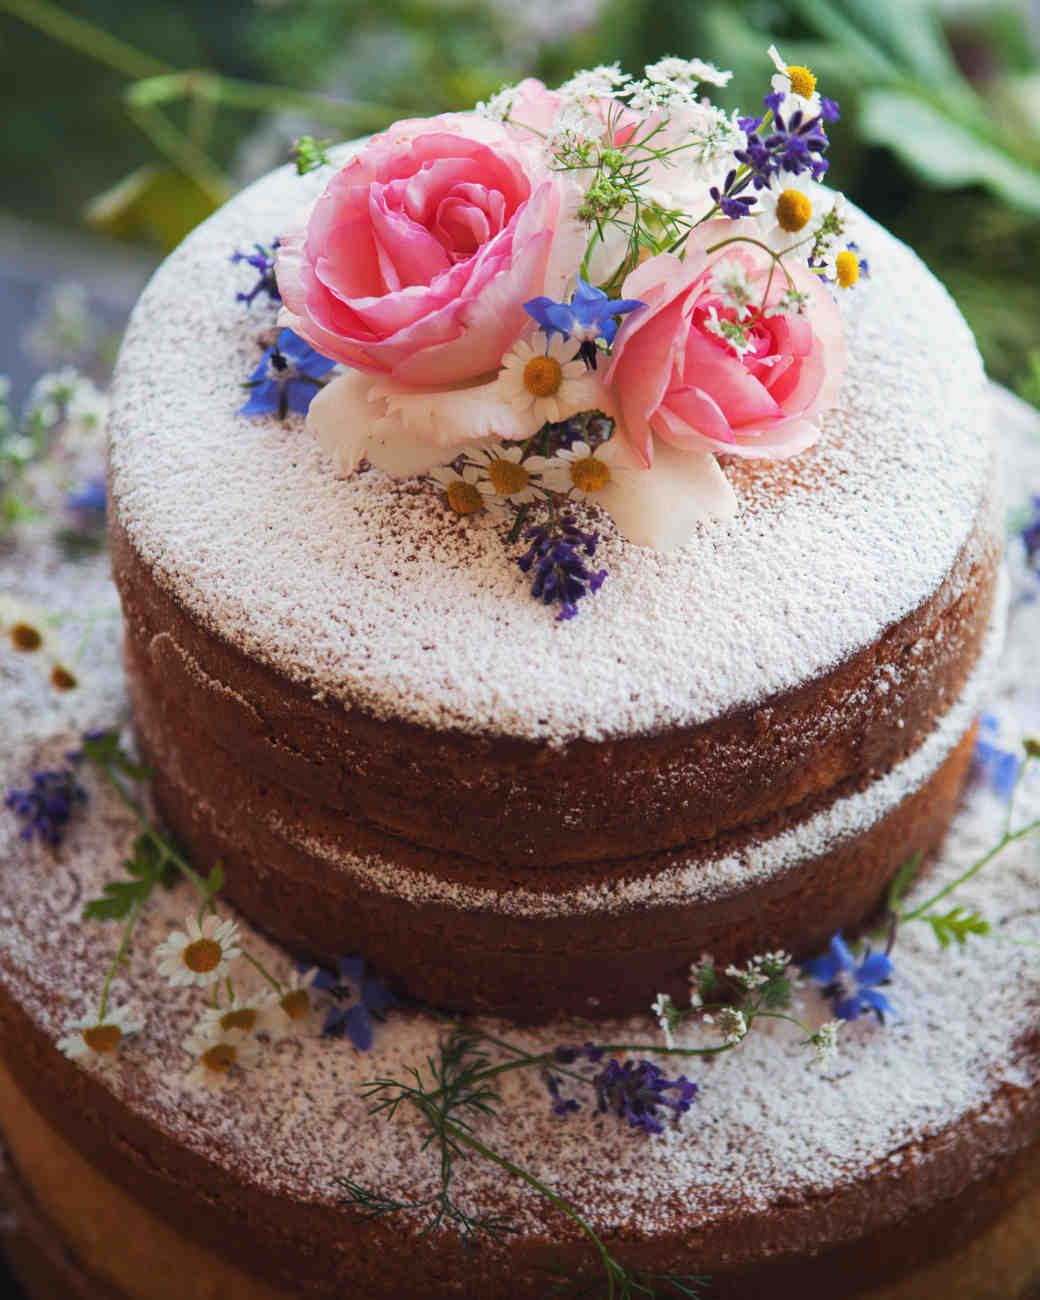 lilly-carter-wedding-cake-00550-s112037-0715..jpg